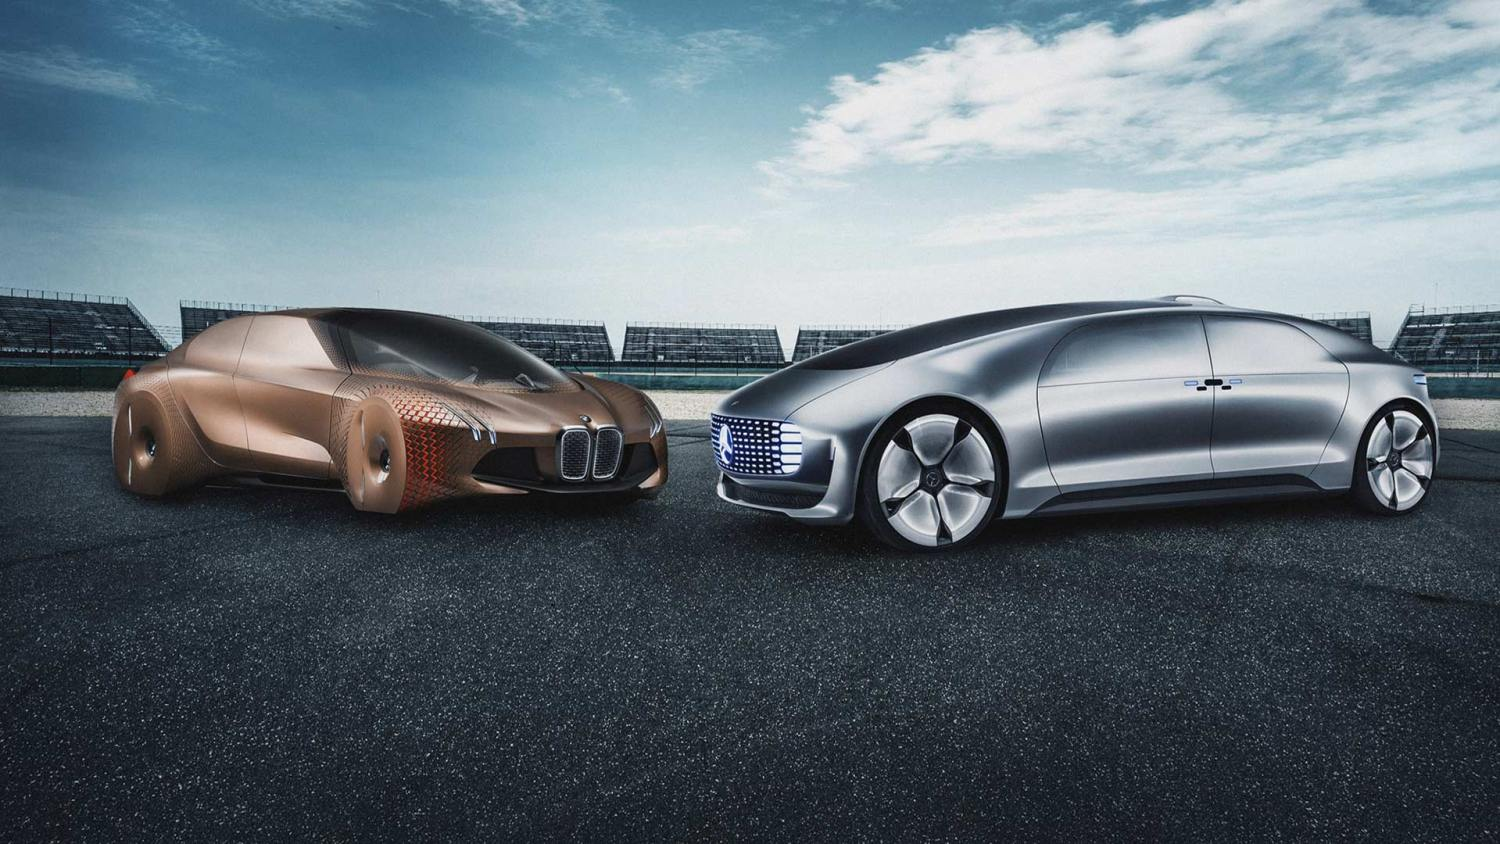 BMW and Mercedes join forces on autonomous tech